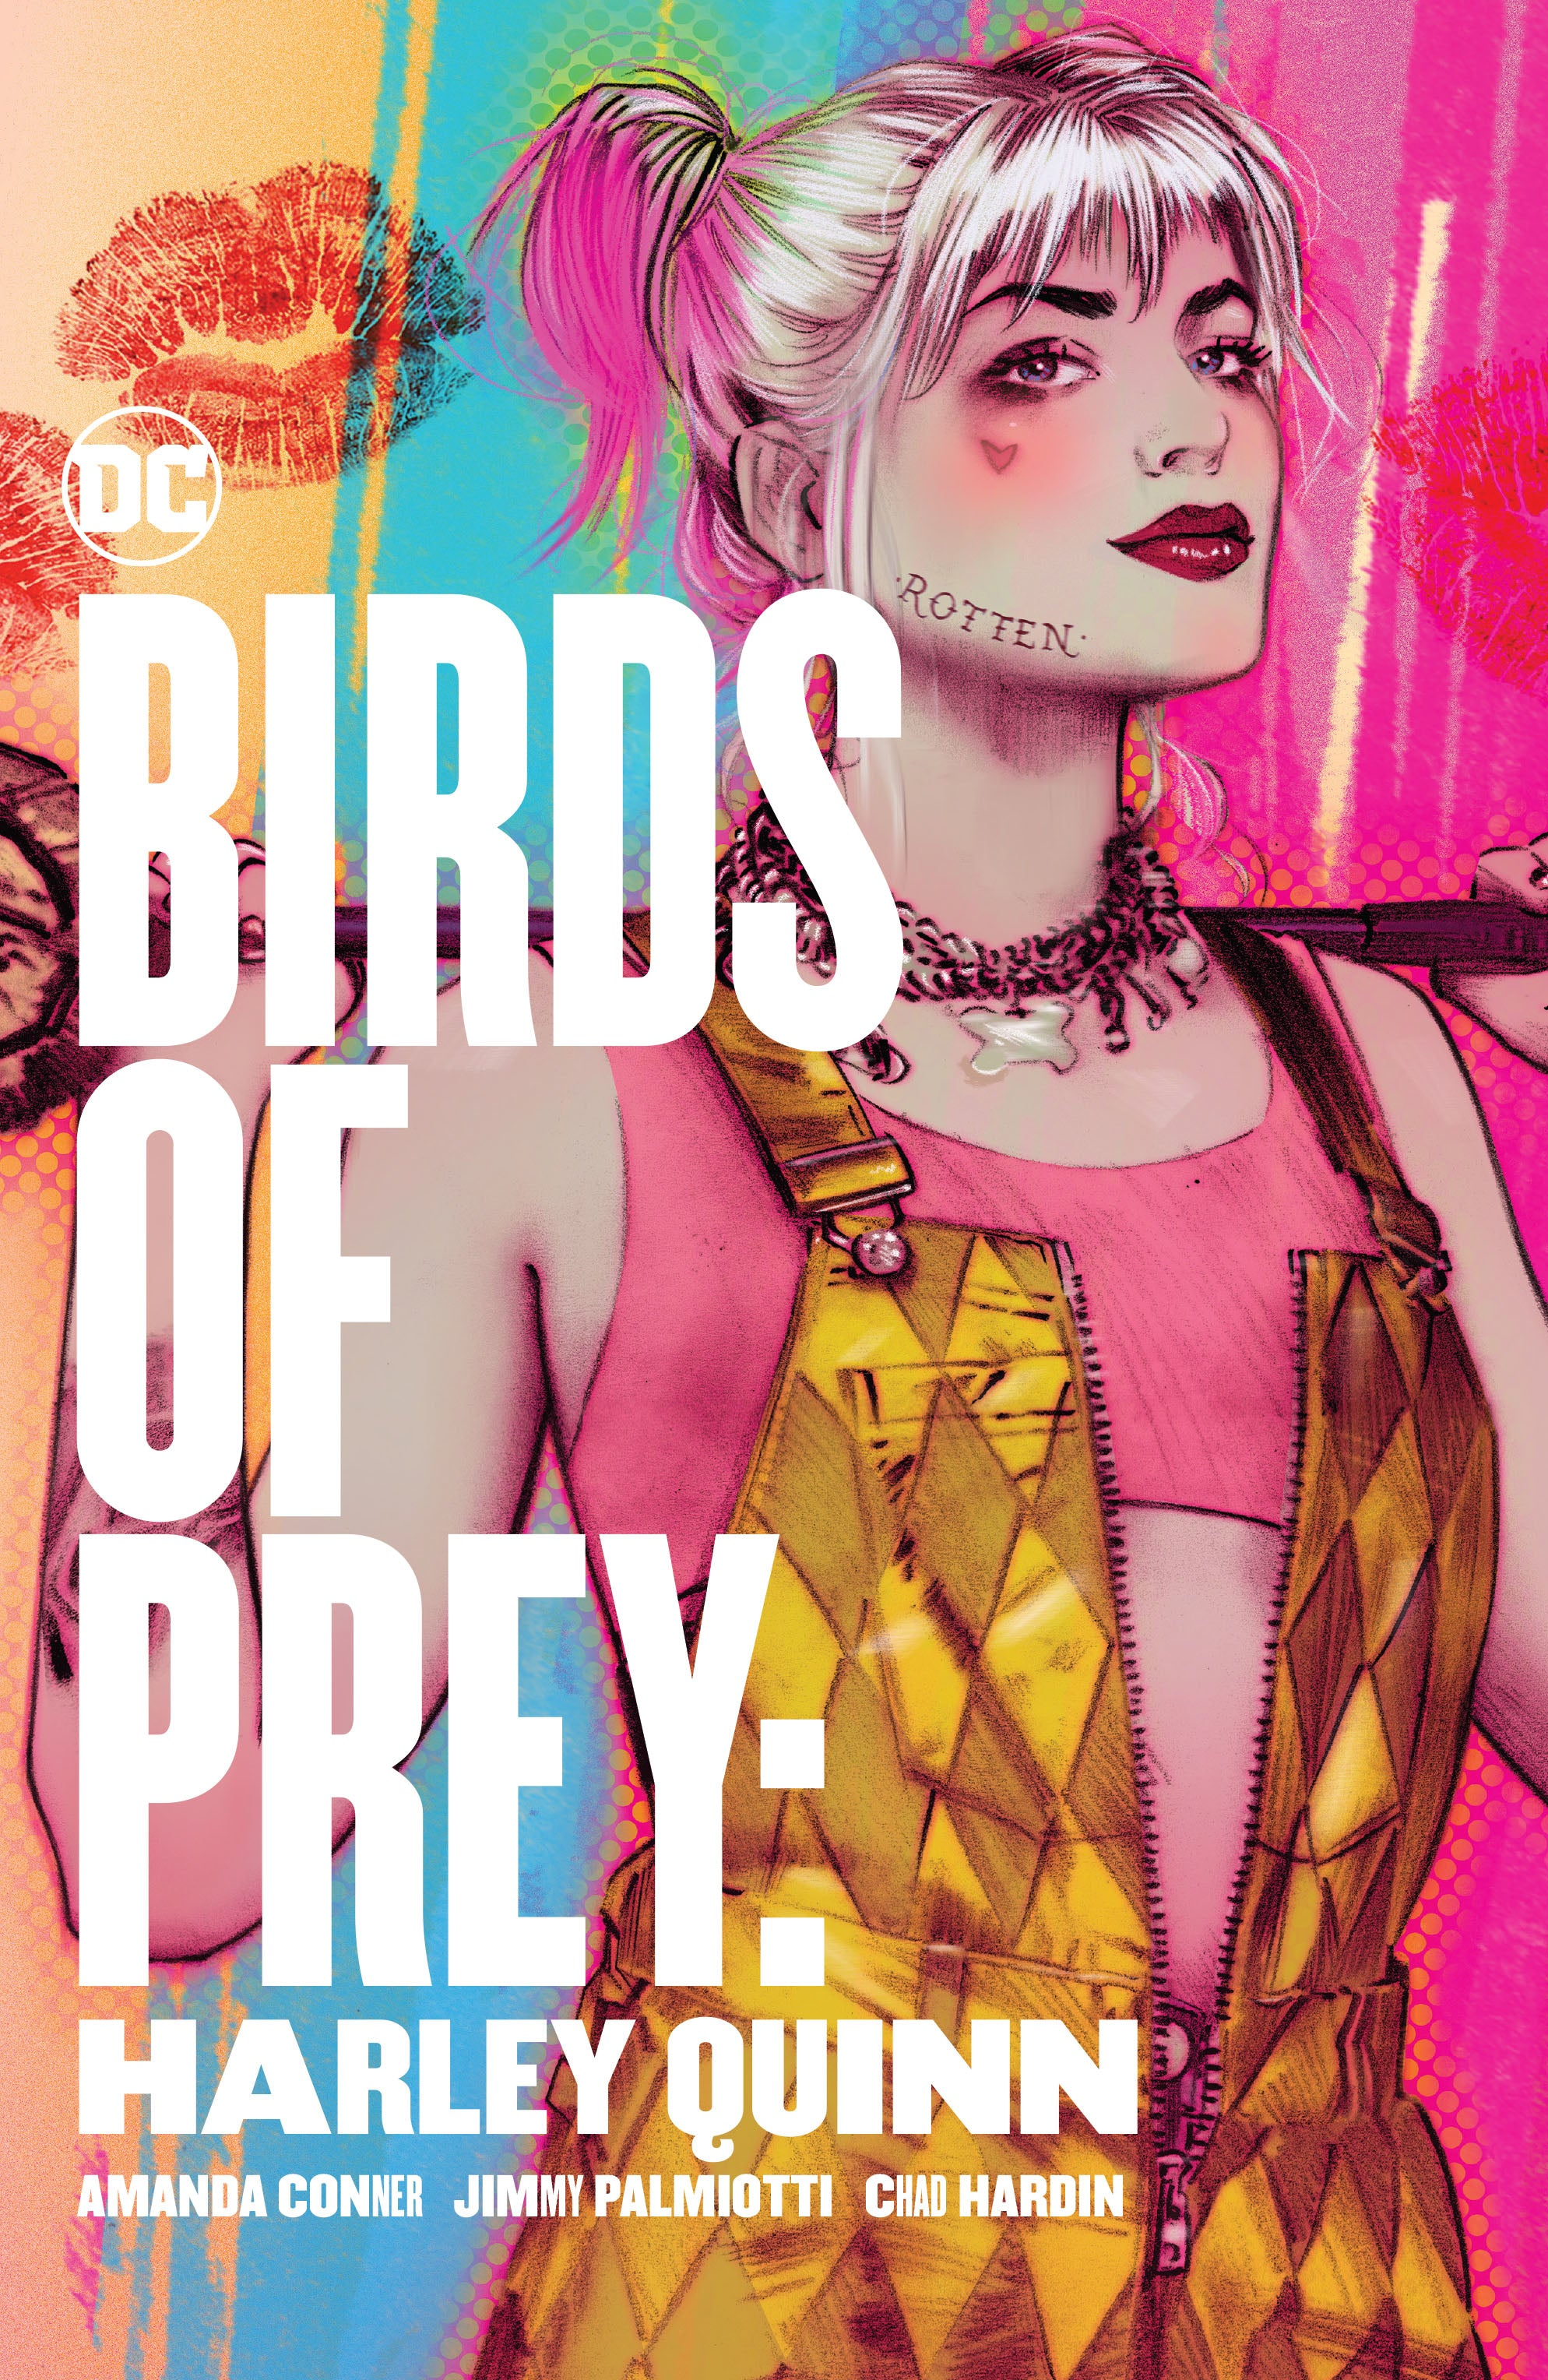 BIRDS OF PREY HARLEY QUINN TP | The Multiverse